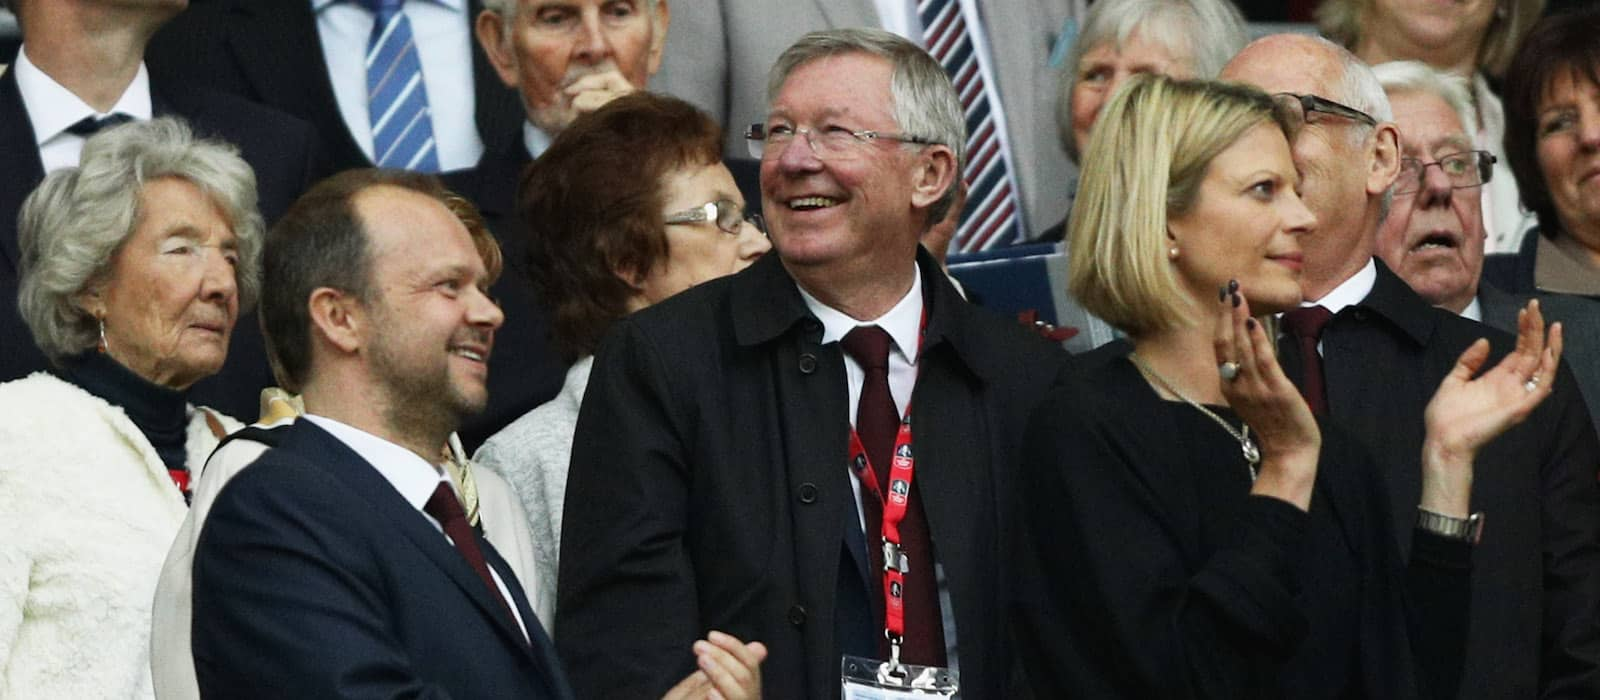 Alex McLeish reveals Sir Alex Ferguson is cracking jokes from his hospital bed